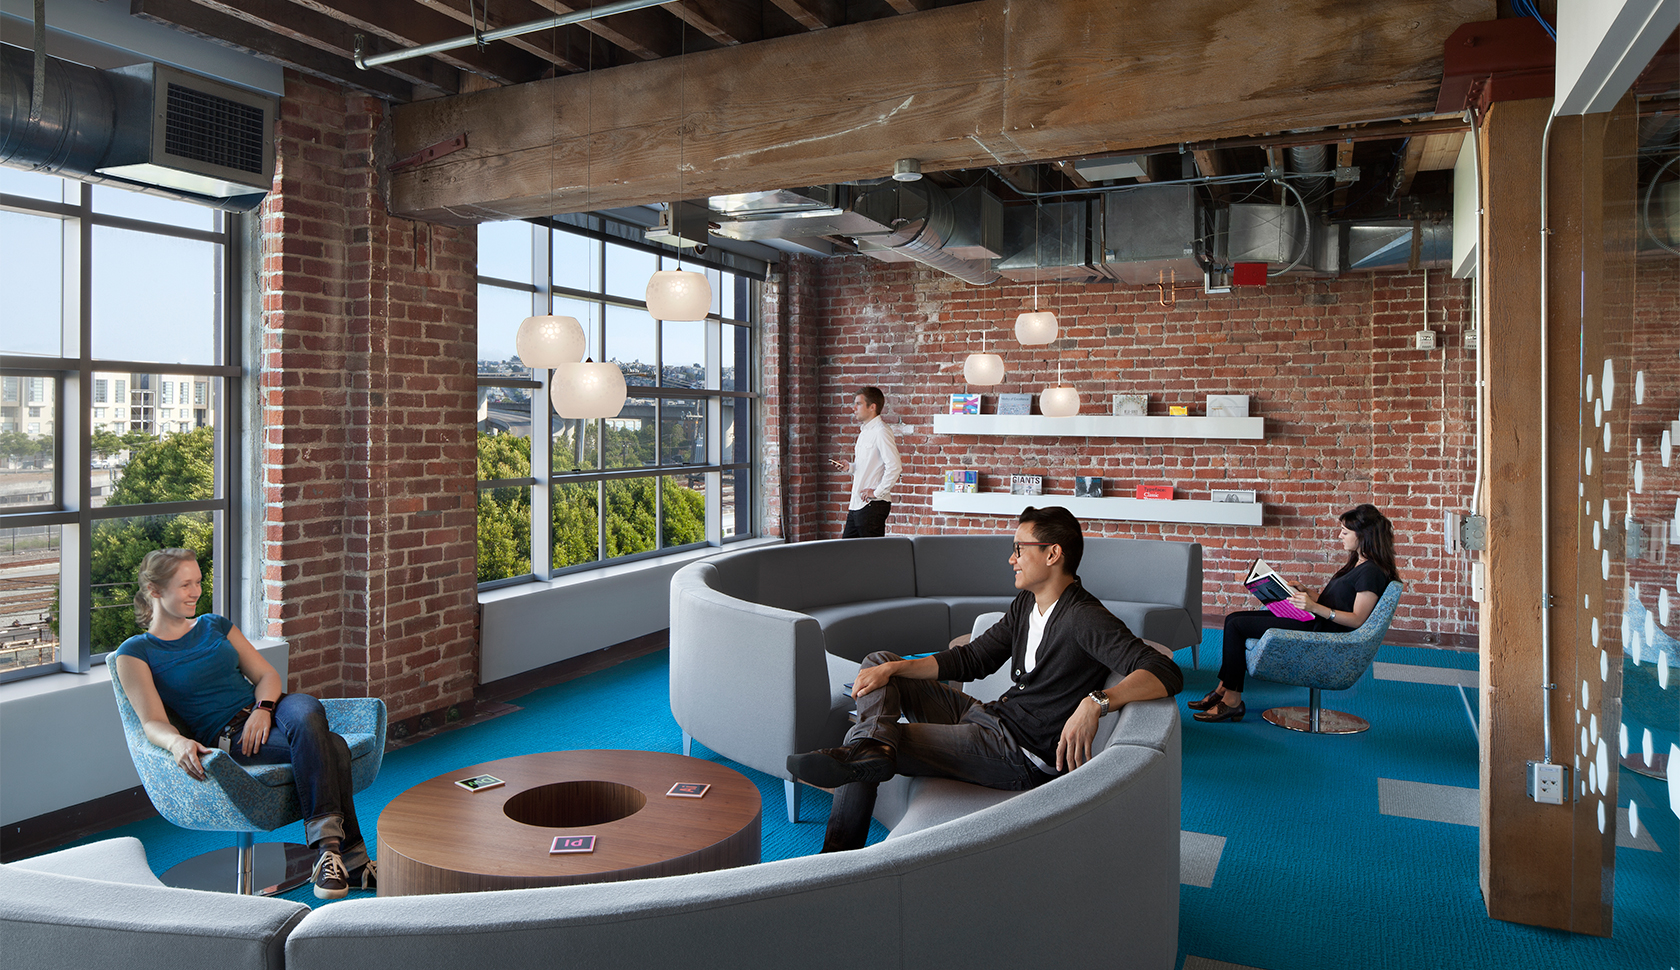 Adobe coolest offices 2016